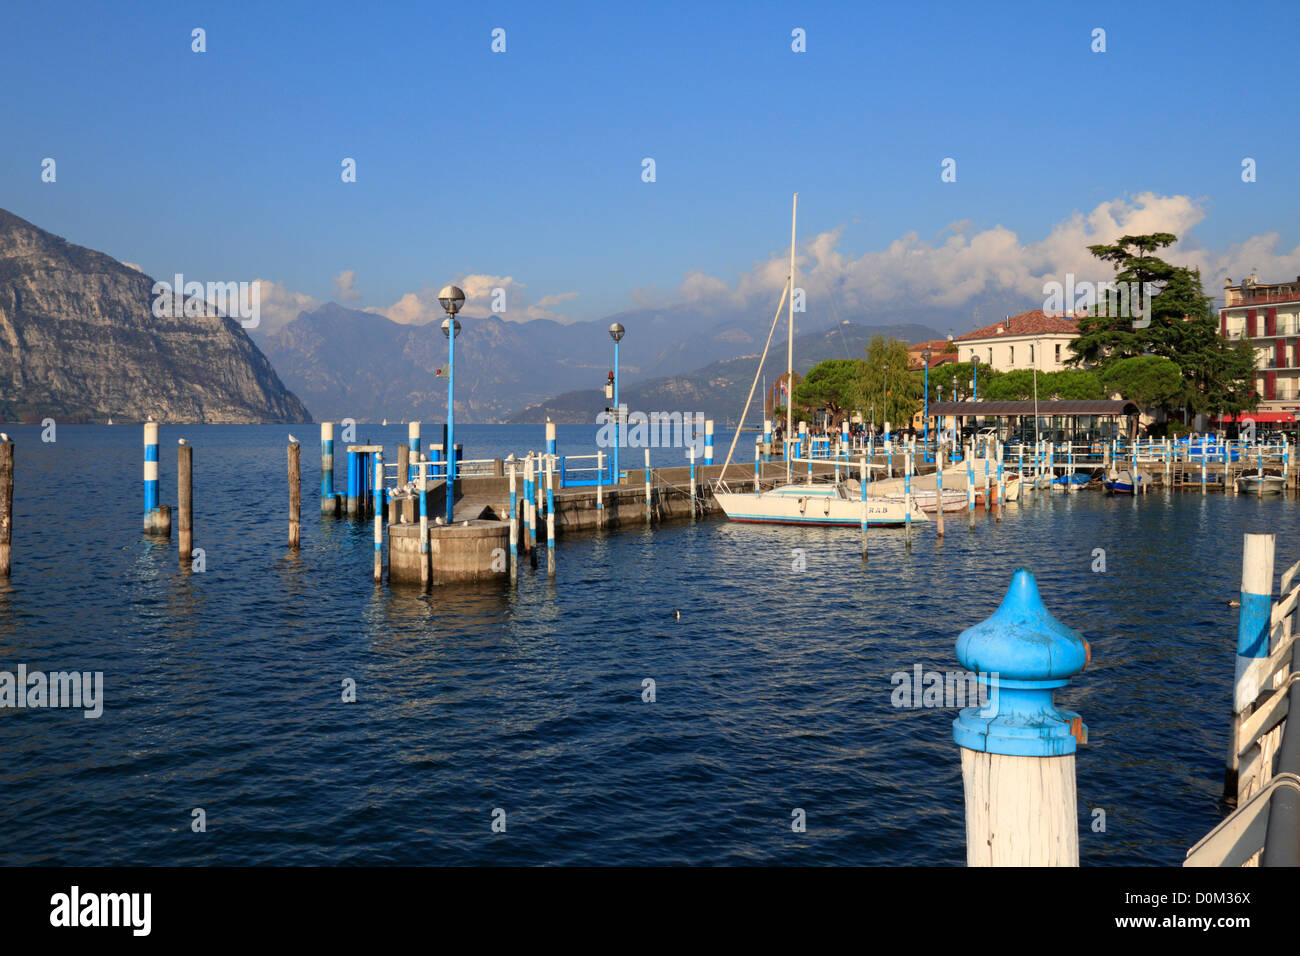 Boats in the harbour on Lake Iseo near Bergamo, Lombardy, Italy, Europe. - Stock Image